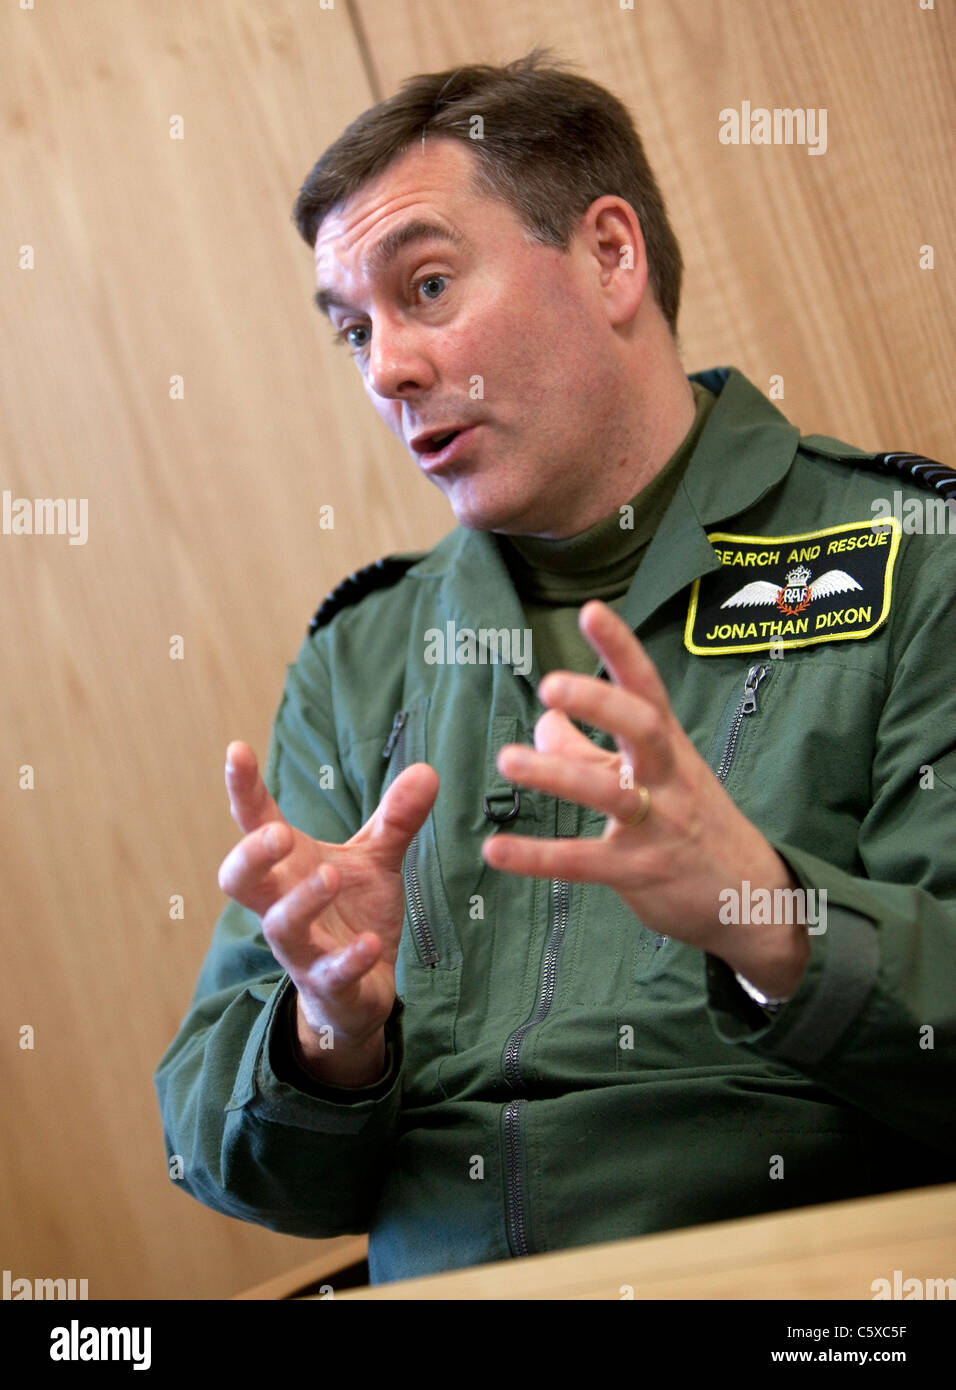 Group Captain Jonathan Dixon of the RAF Search and Rescue team (SARS) at Raf Valley on Anglesey North Wales. - Stock Image